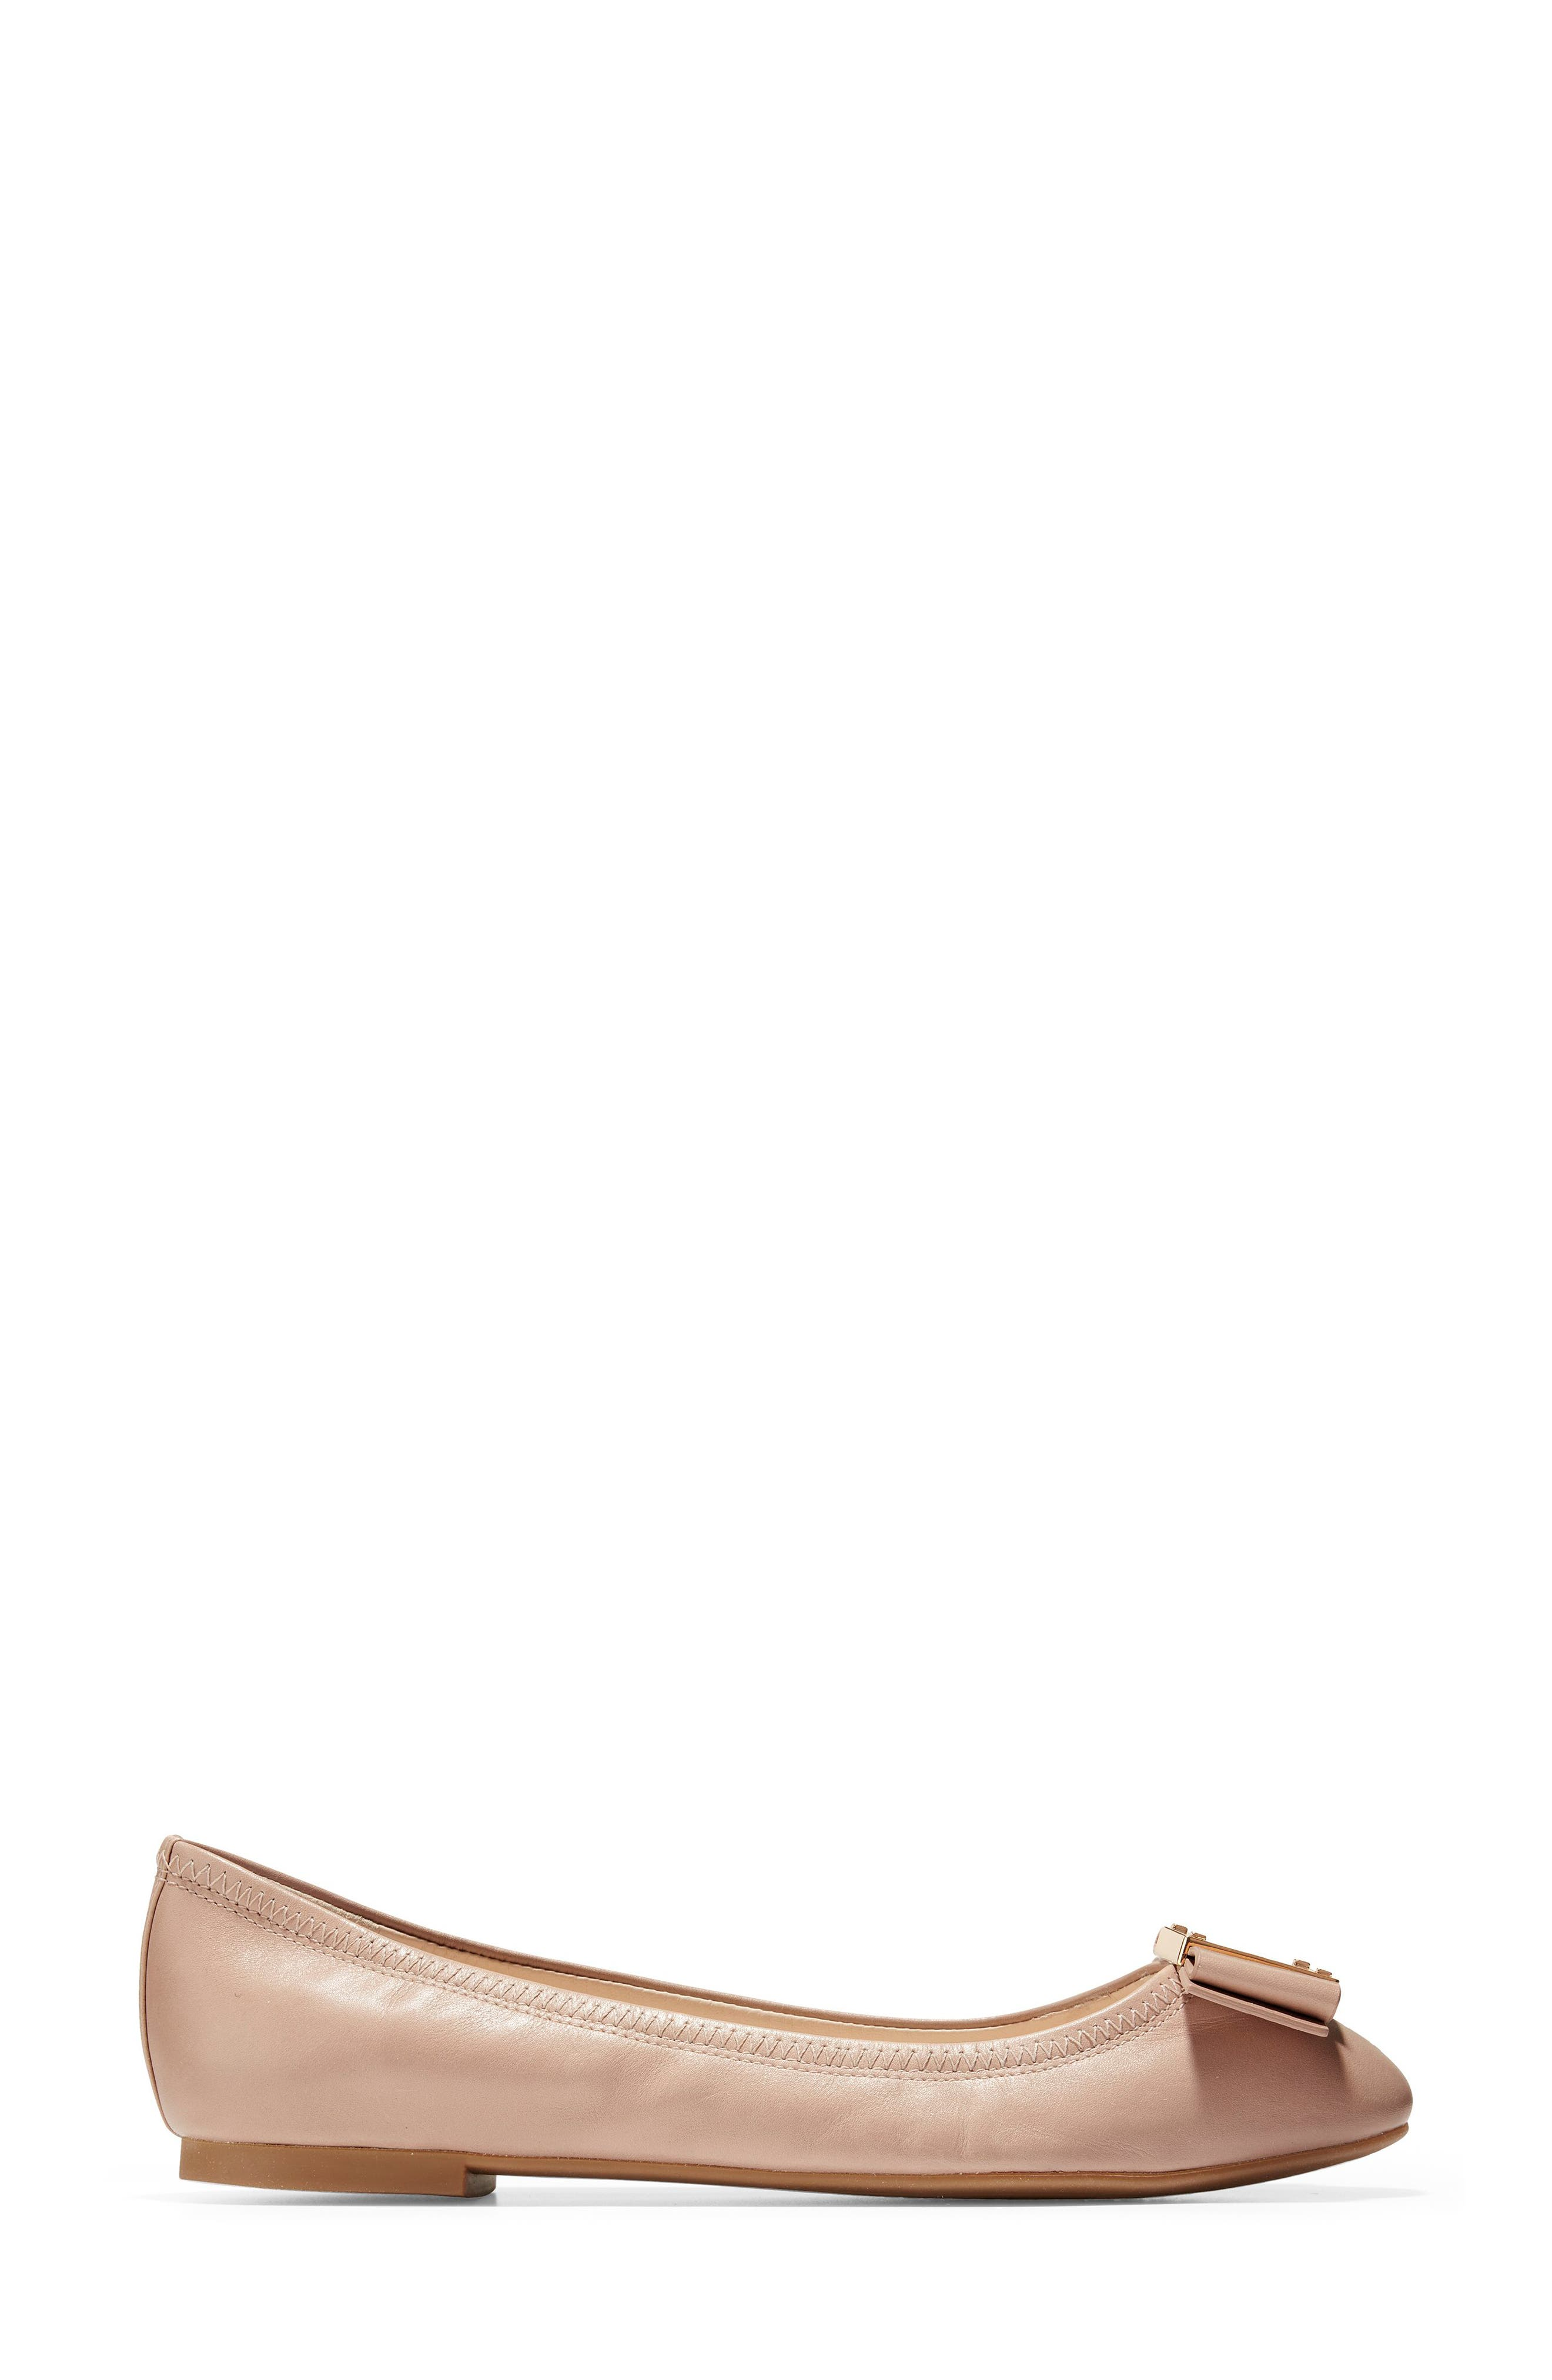 Tali Modern Bow Ballet Flat,                             Alternate thumbnail 3, color,                             Nude Leather